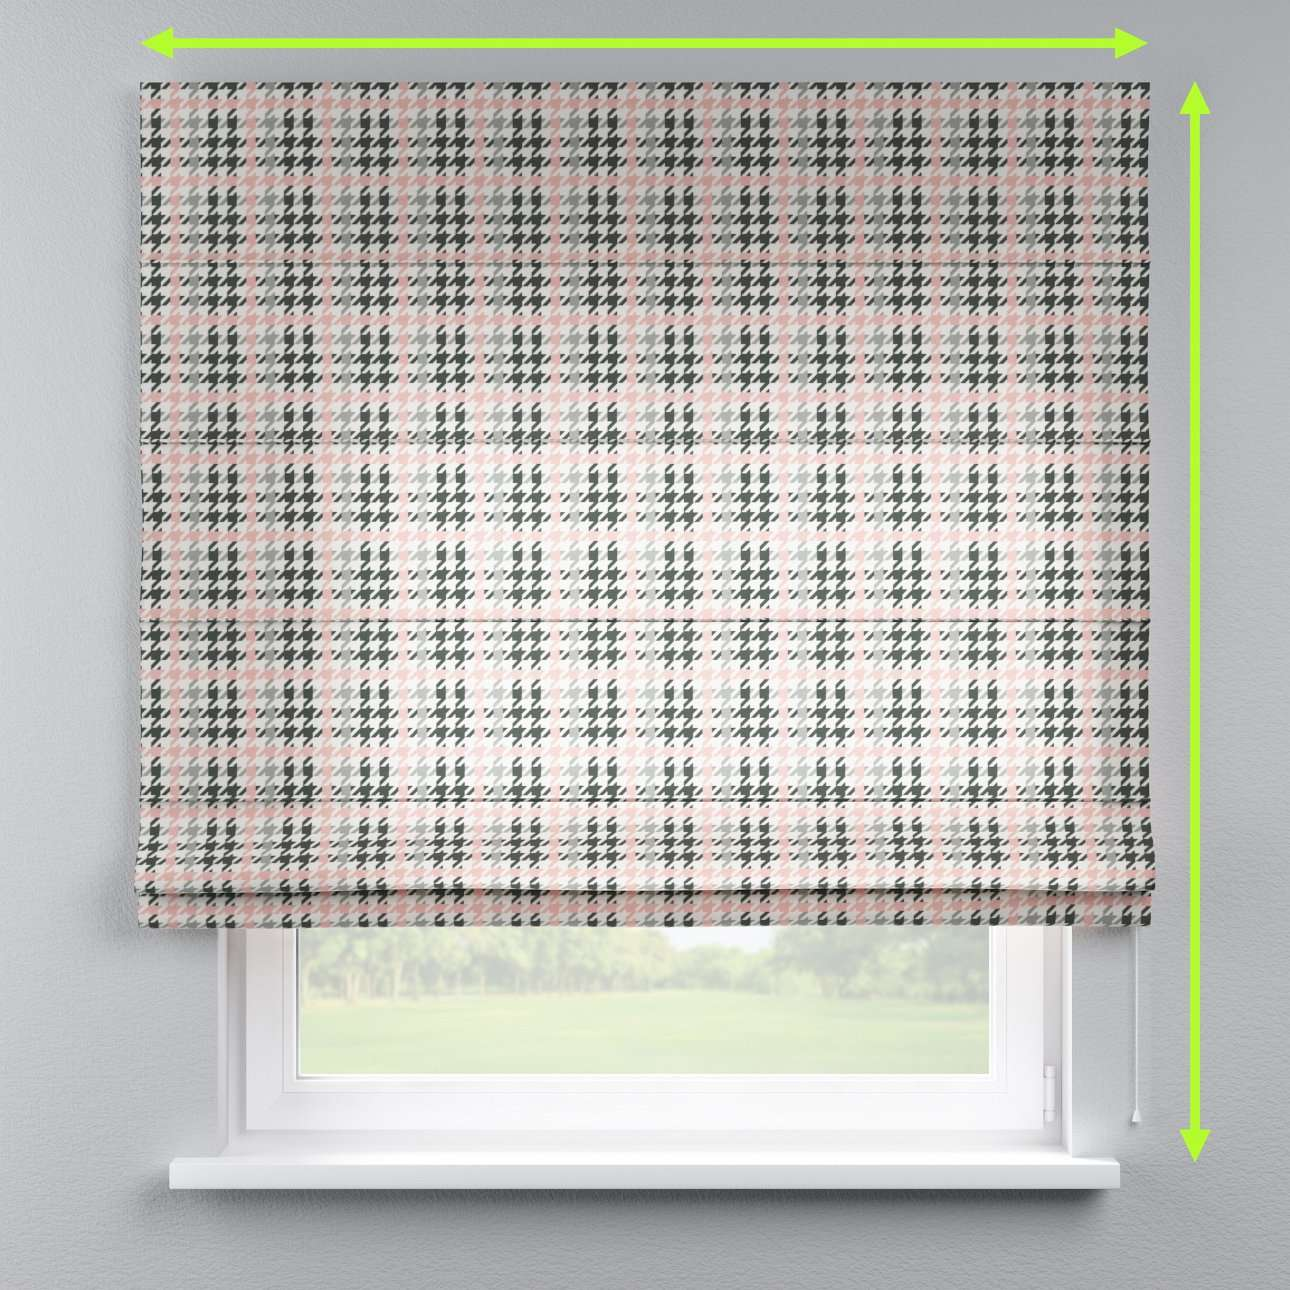 Capri roman blind in collection Brooklyn, fabric: 137-75